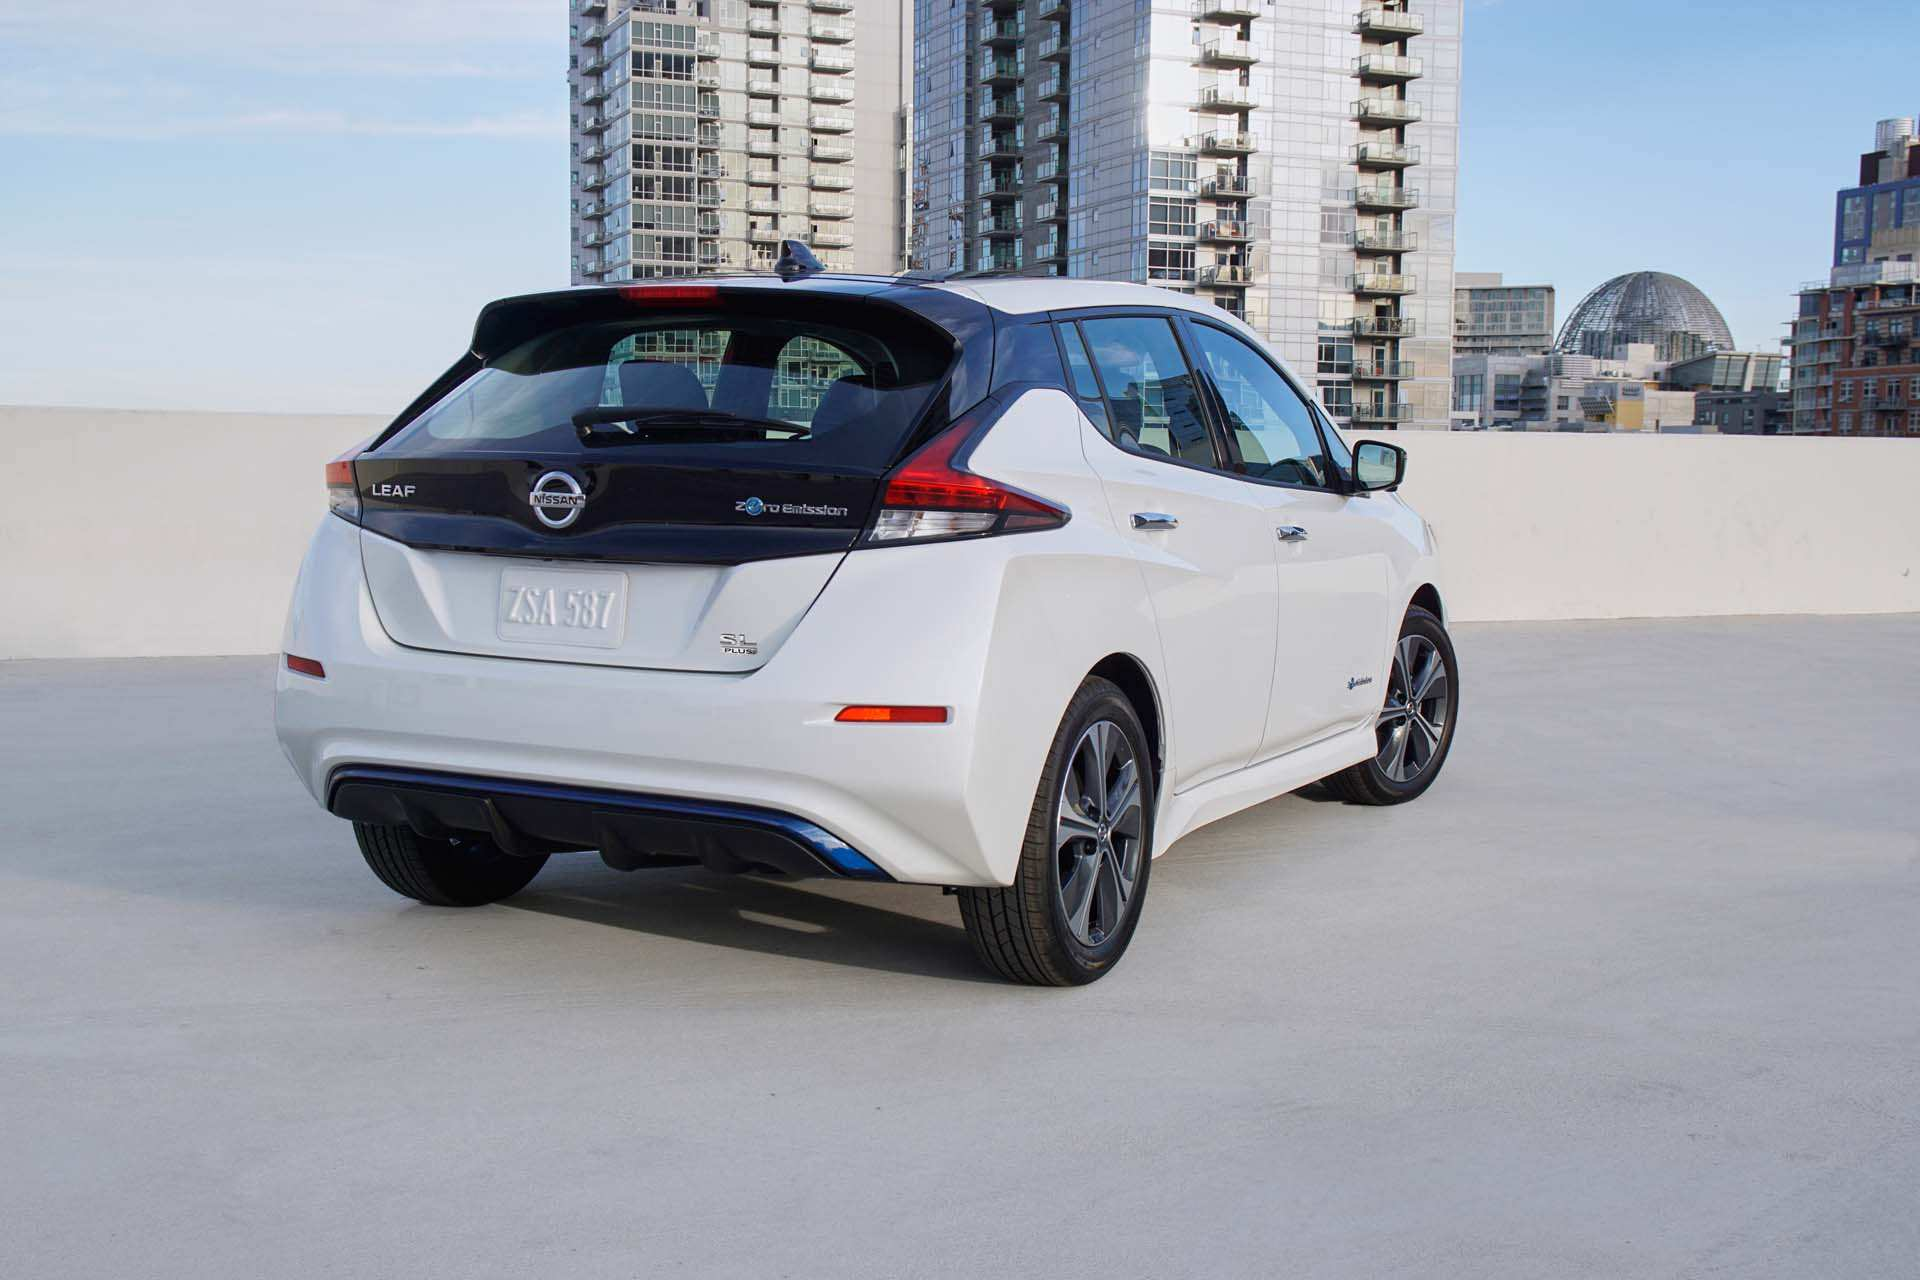 43 New Nissan Leaf Suv 2020 New Review